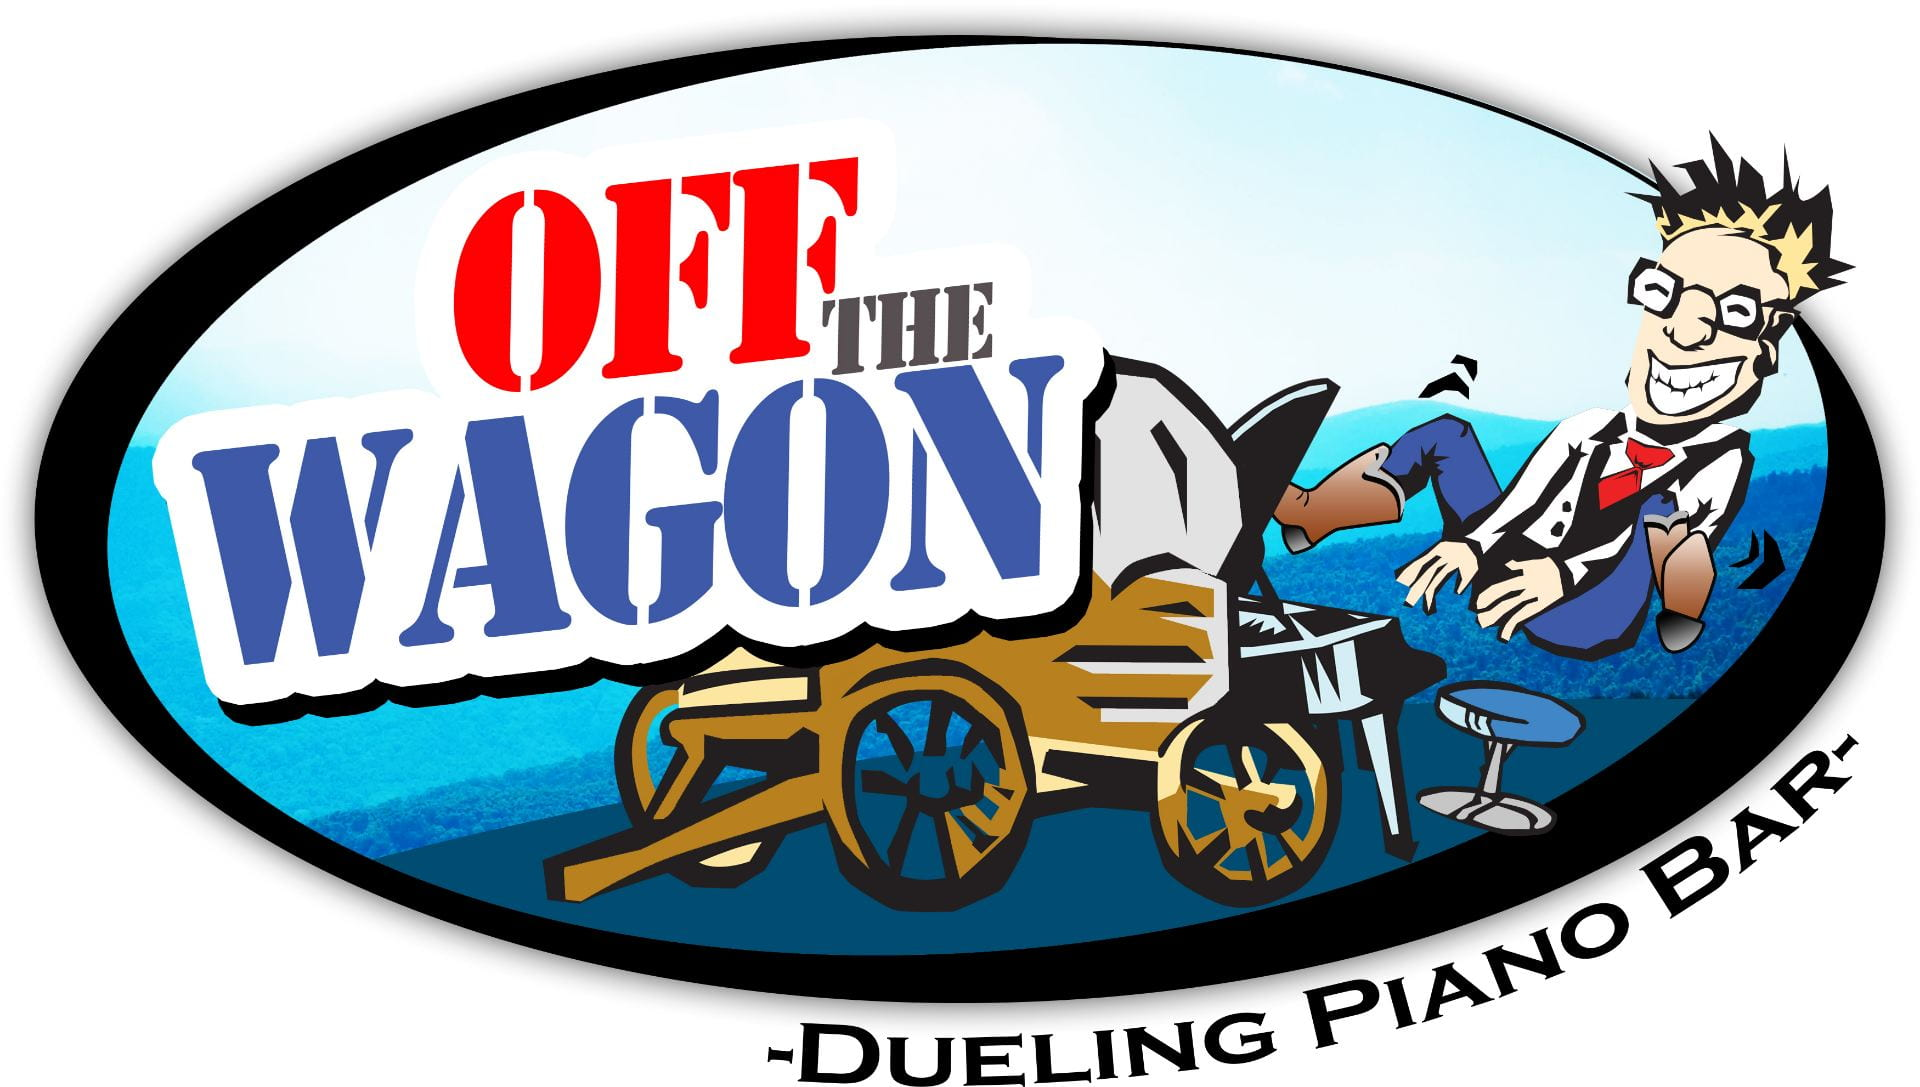 Off the Wagon logo